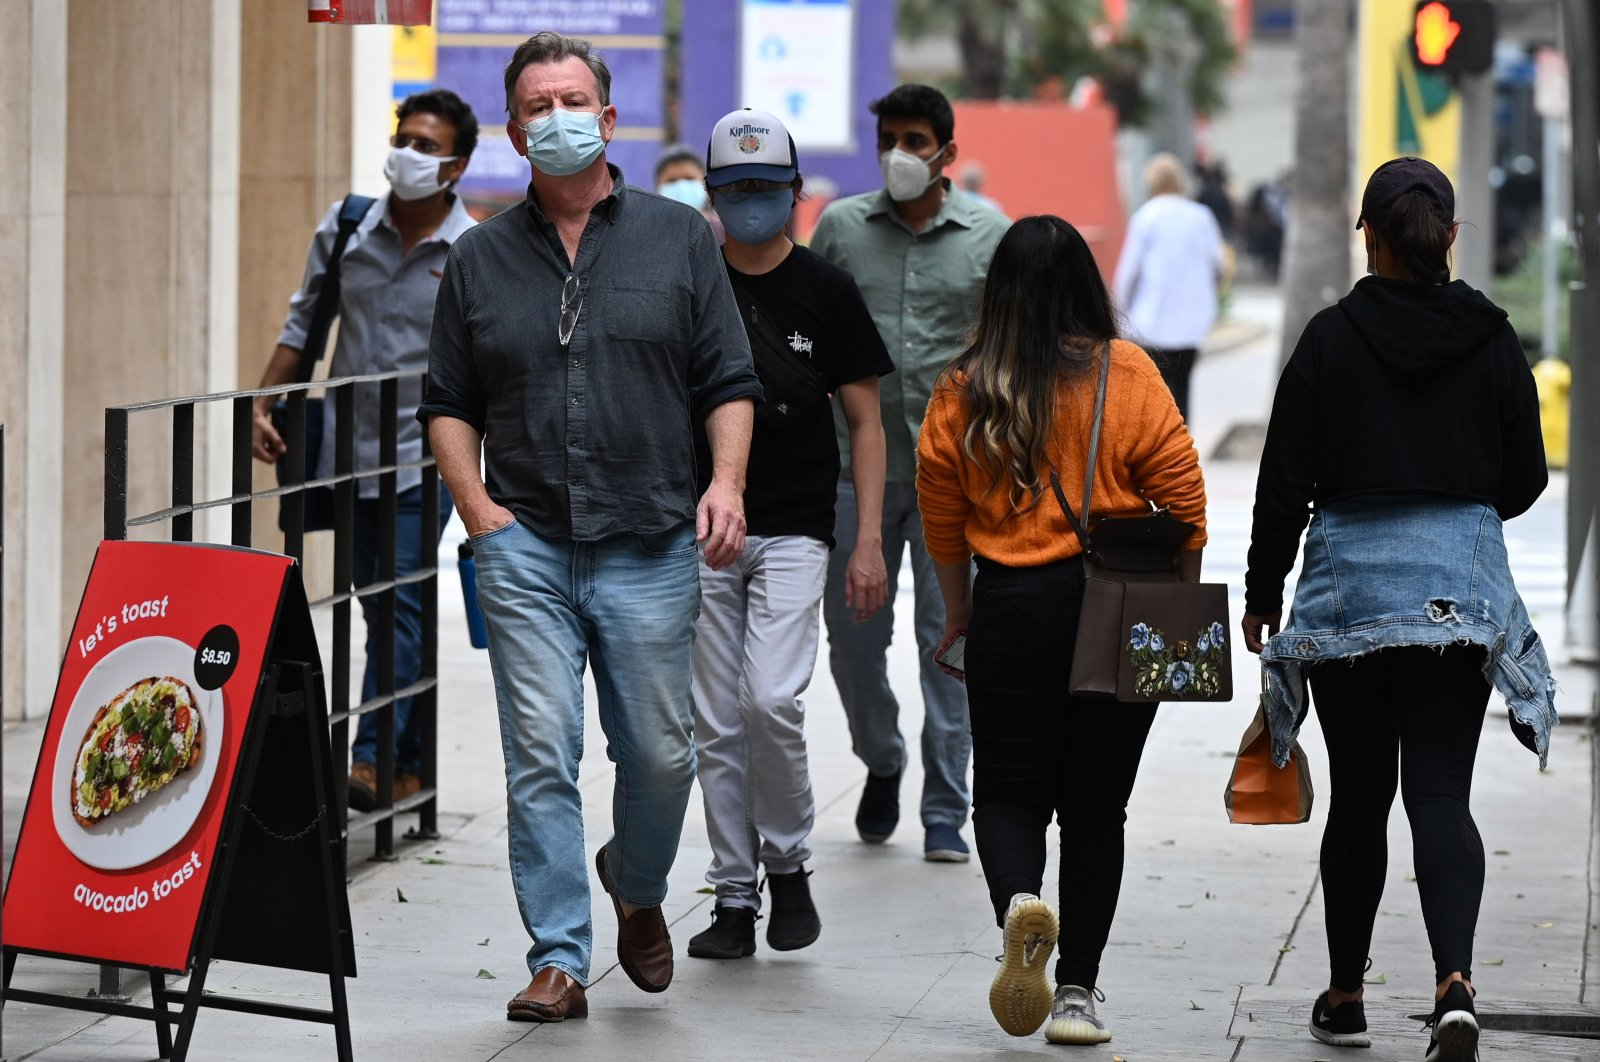 People wearing masks to prevent the spread of the coronavirus walk in downtown Los Angeles, California, Nov. 5, 2020. (AFP Photo)